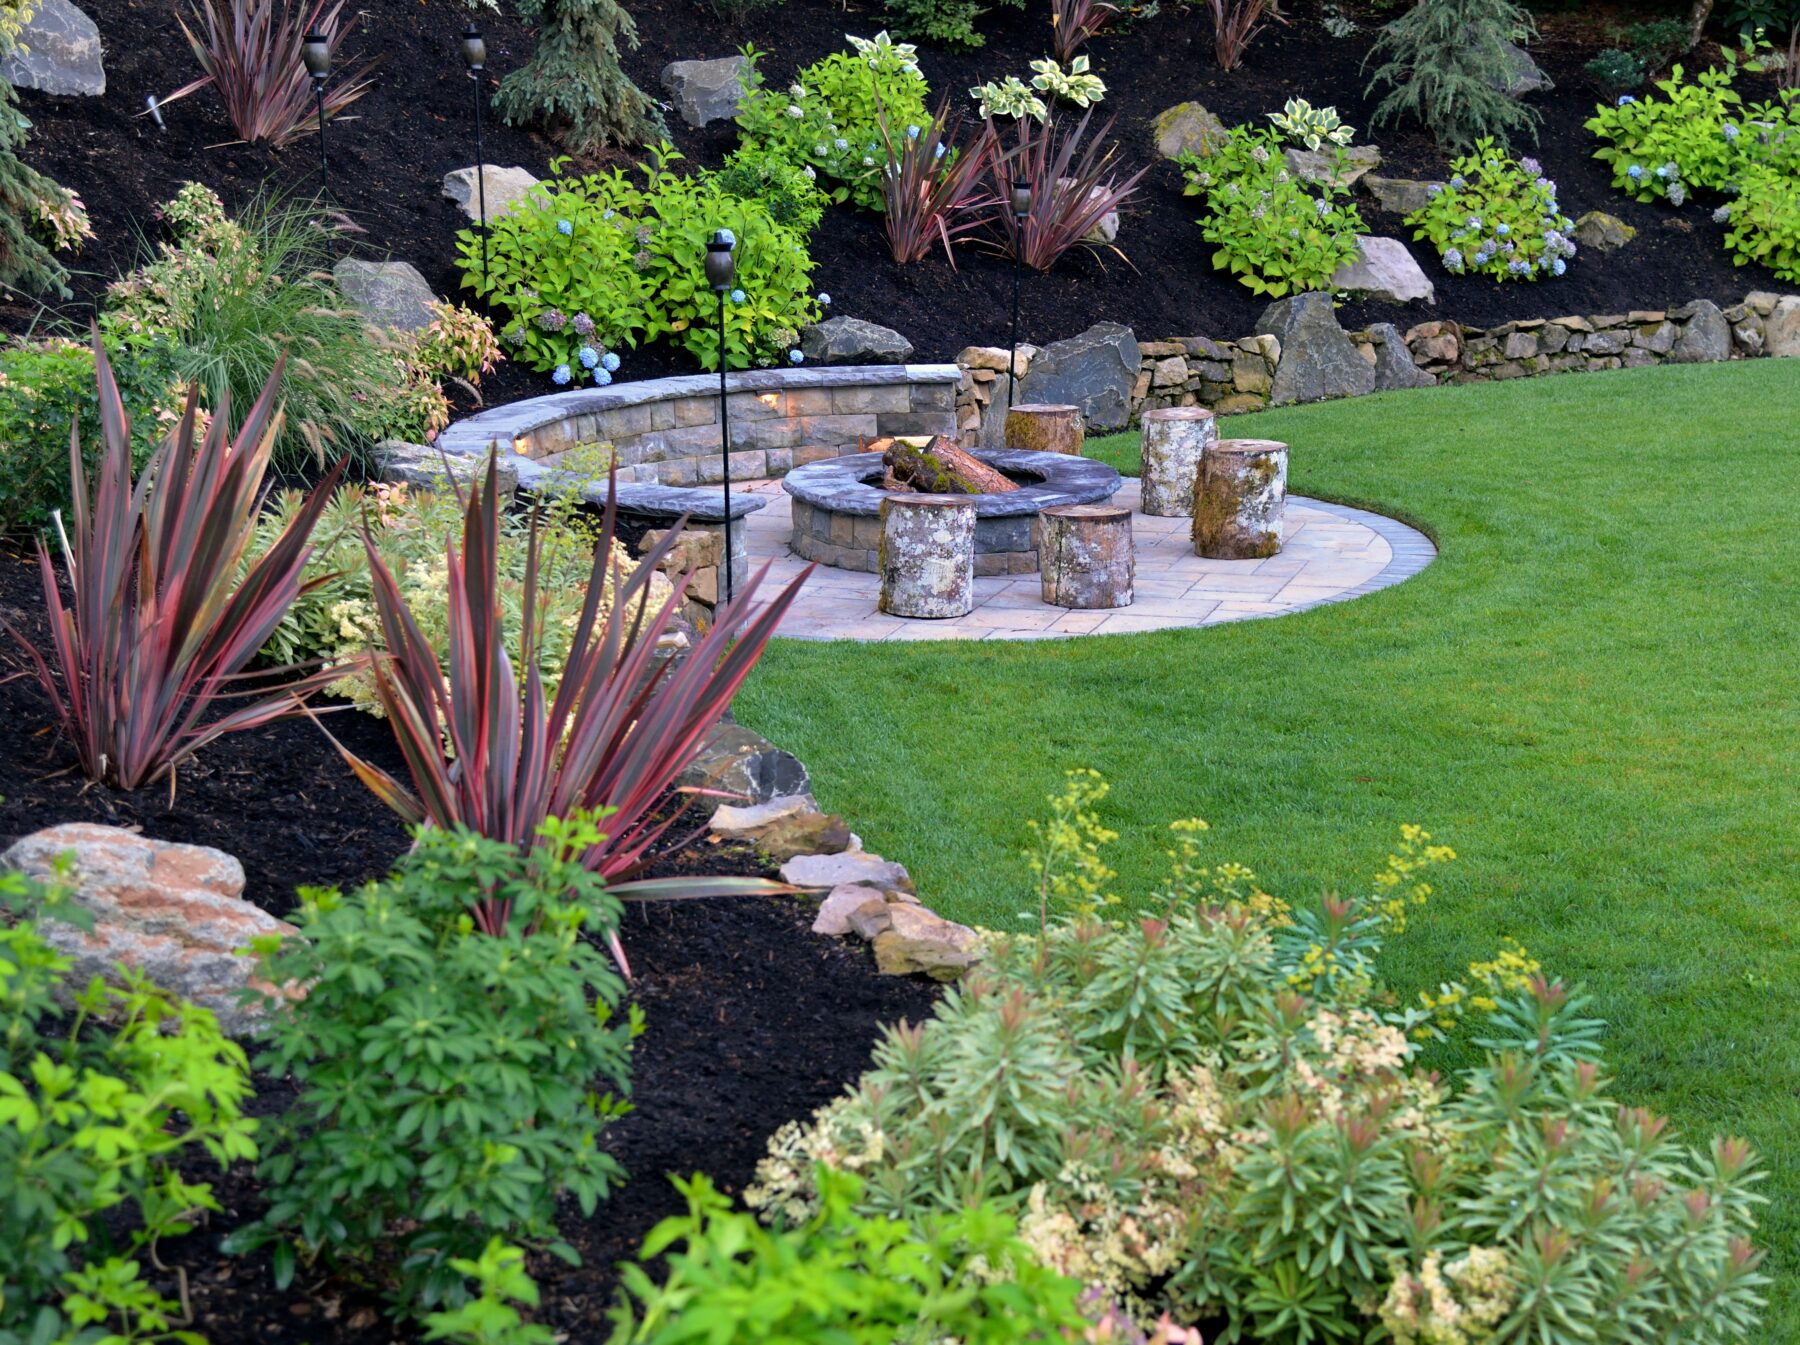 An example of Carlton landscape design and landscape construction work